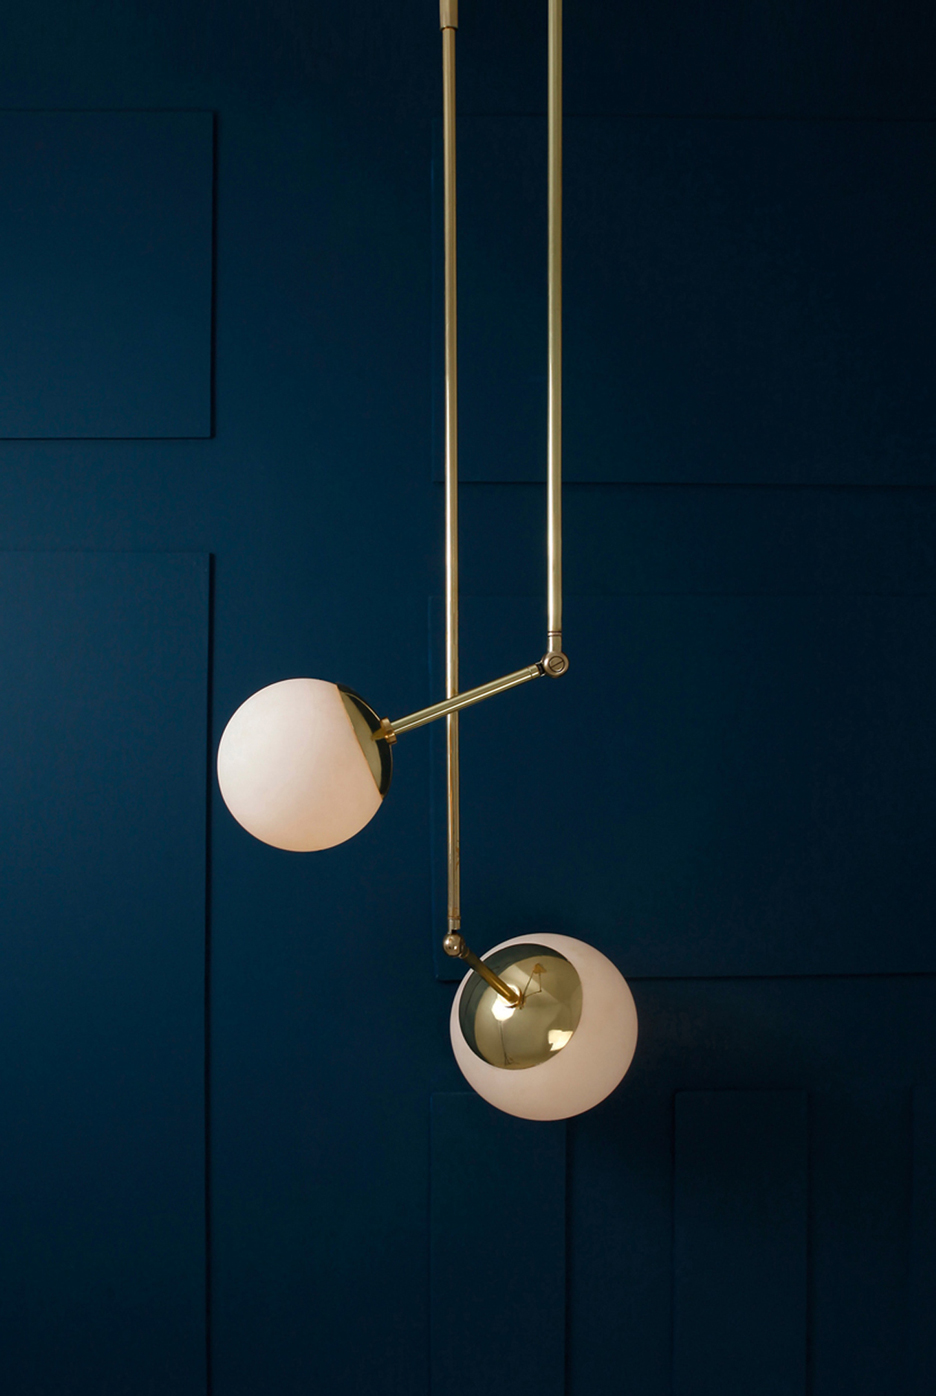 lumiere-paul-matter-lighting-design_dezeen_936_13.jpg